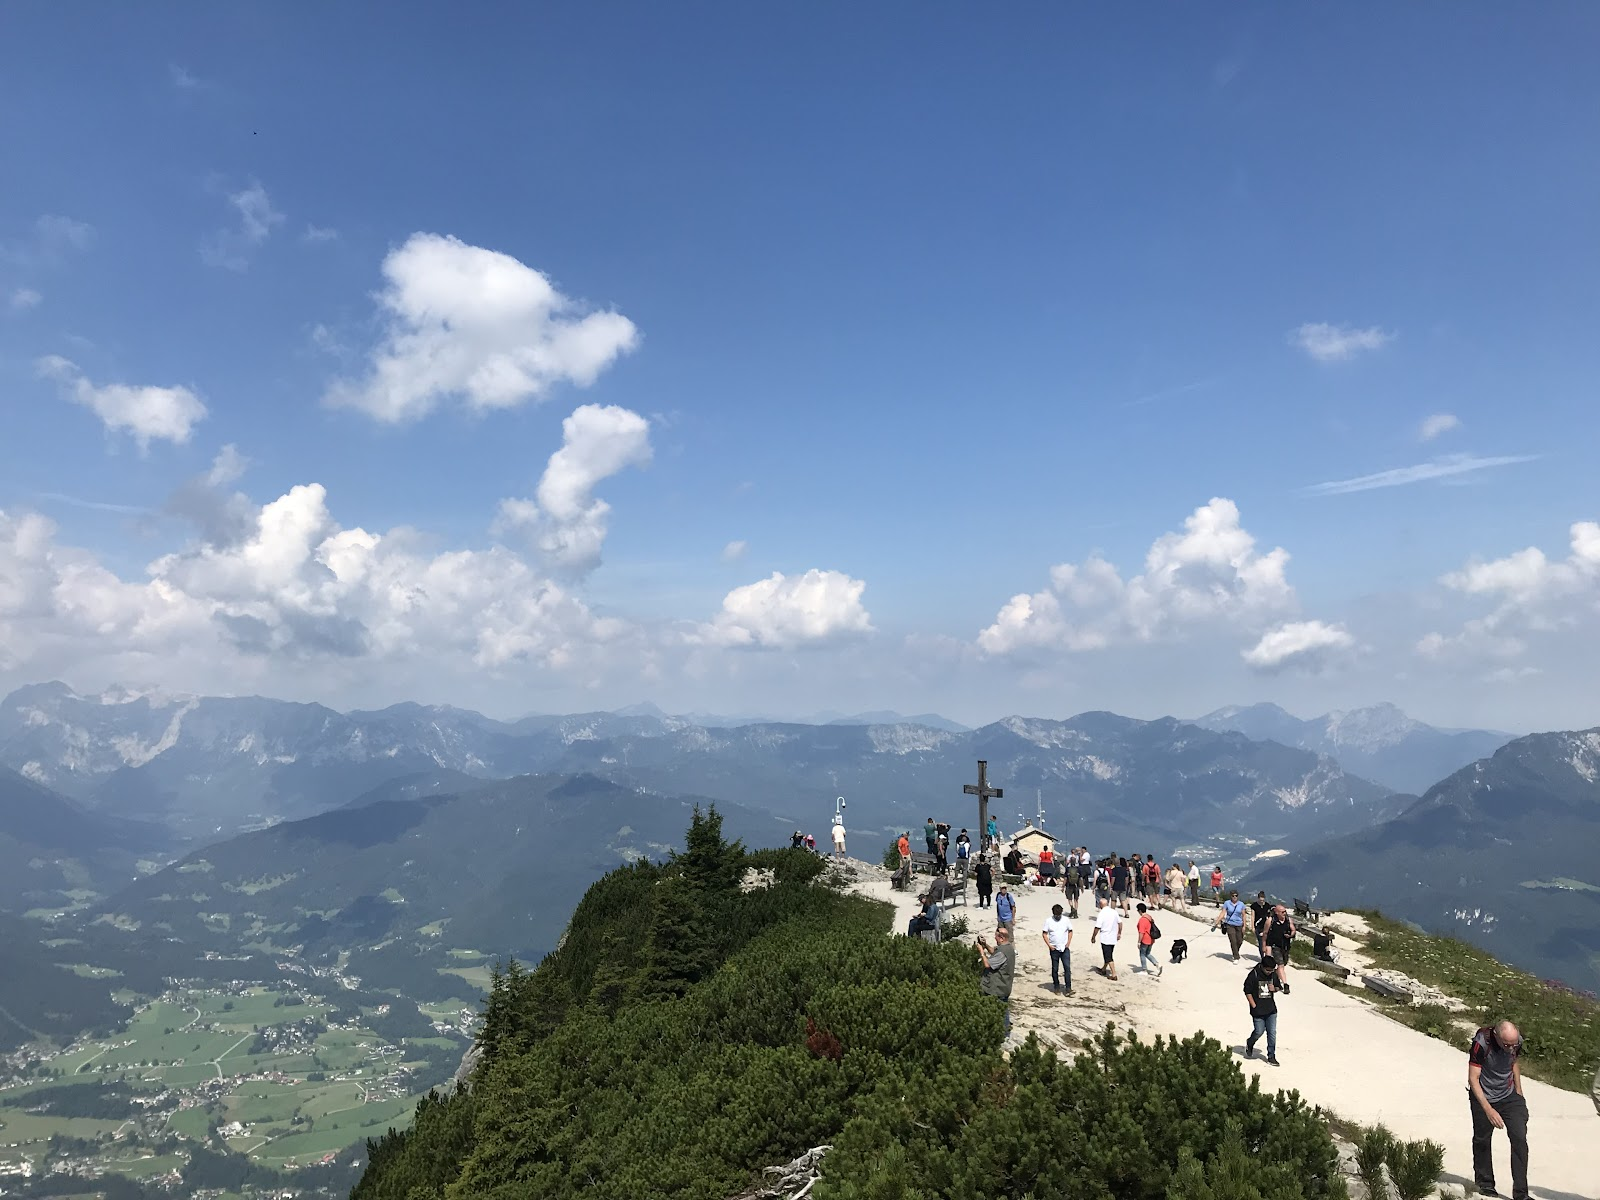 Bike climb of to Hitler's Lair - Eagles Nest - cross at top, walkway, mountains